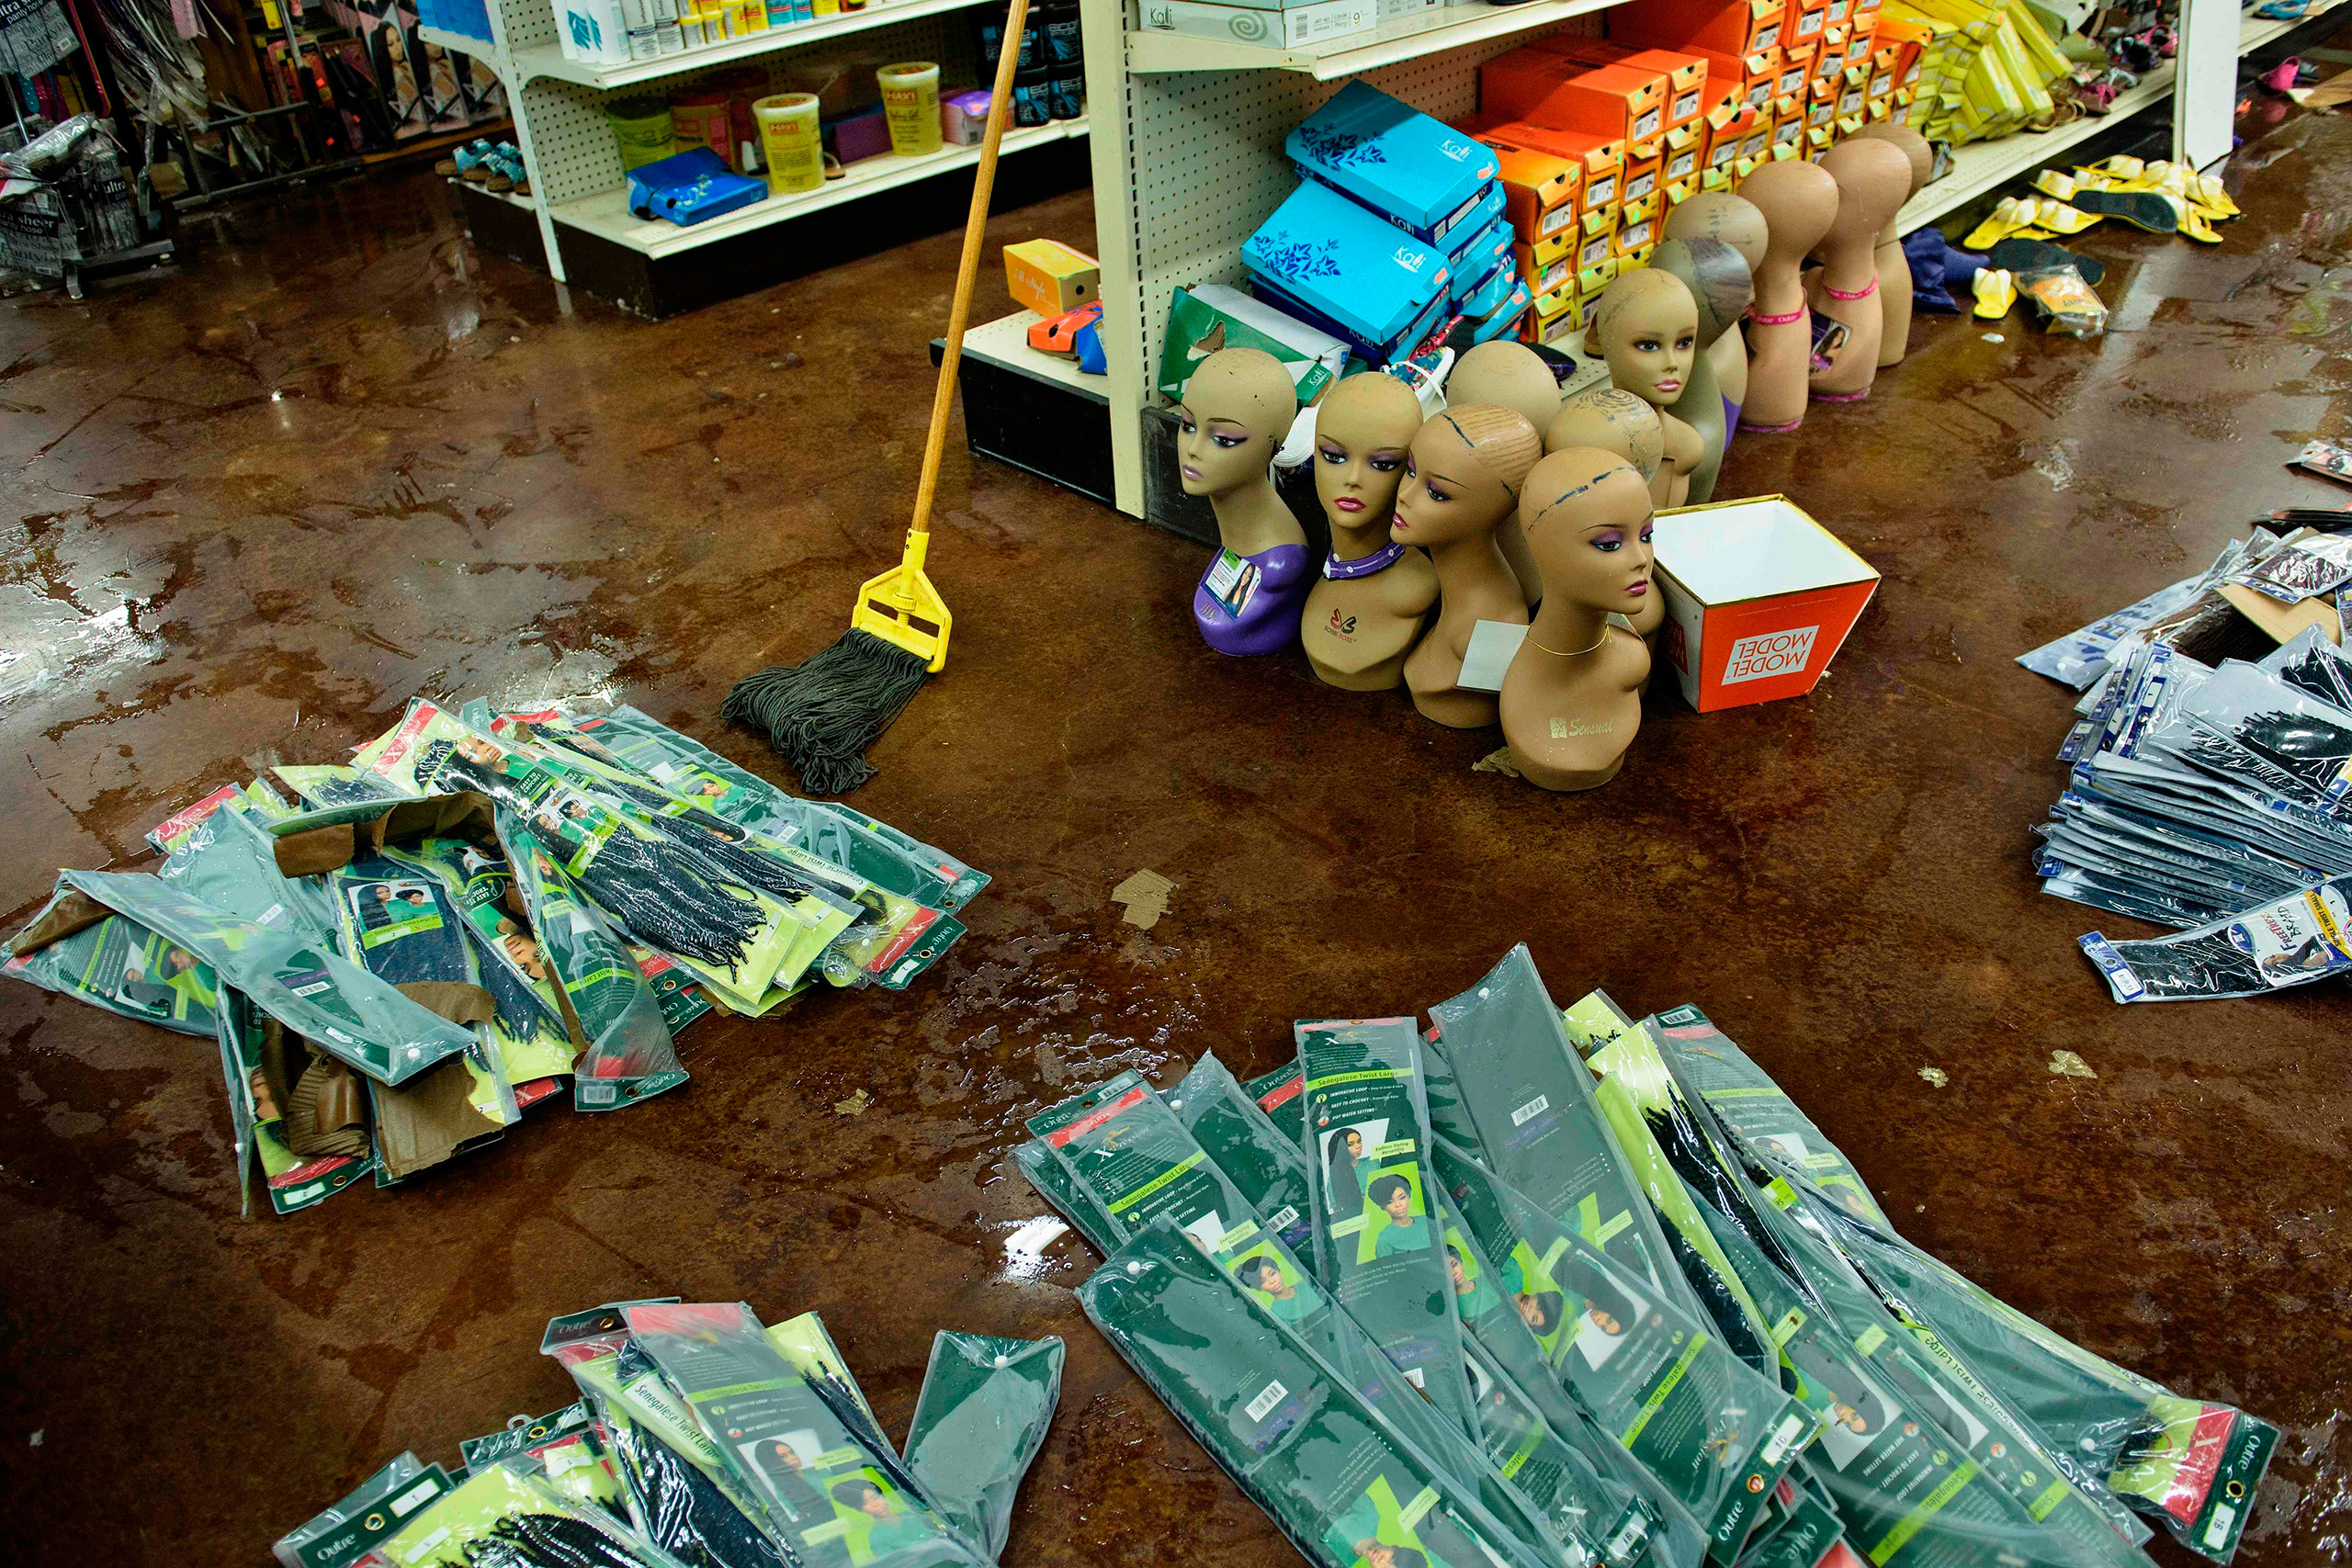 Damaged products are seen at Jasmine's Beauty Supply following the floods in Baton Rouge, La., on Aug. 16, 2016.